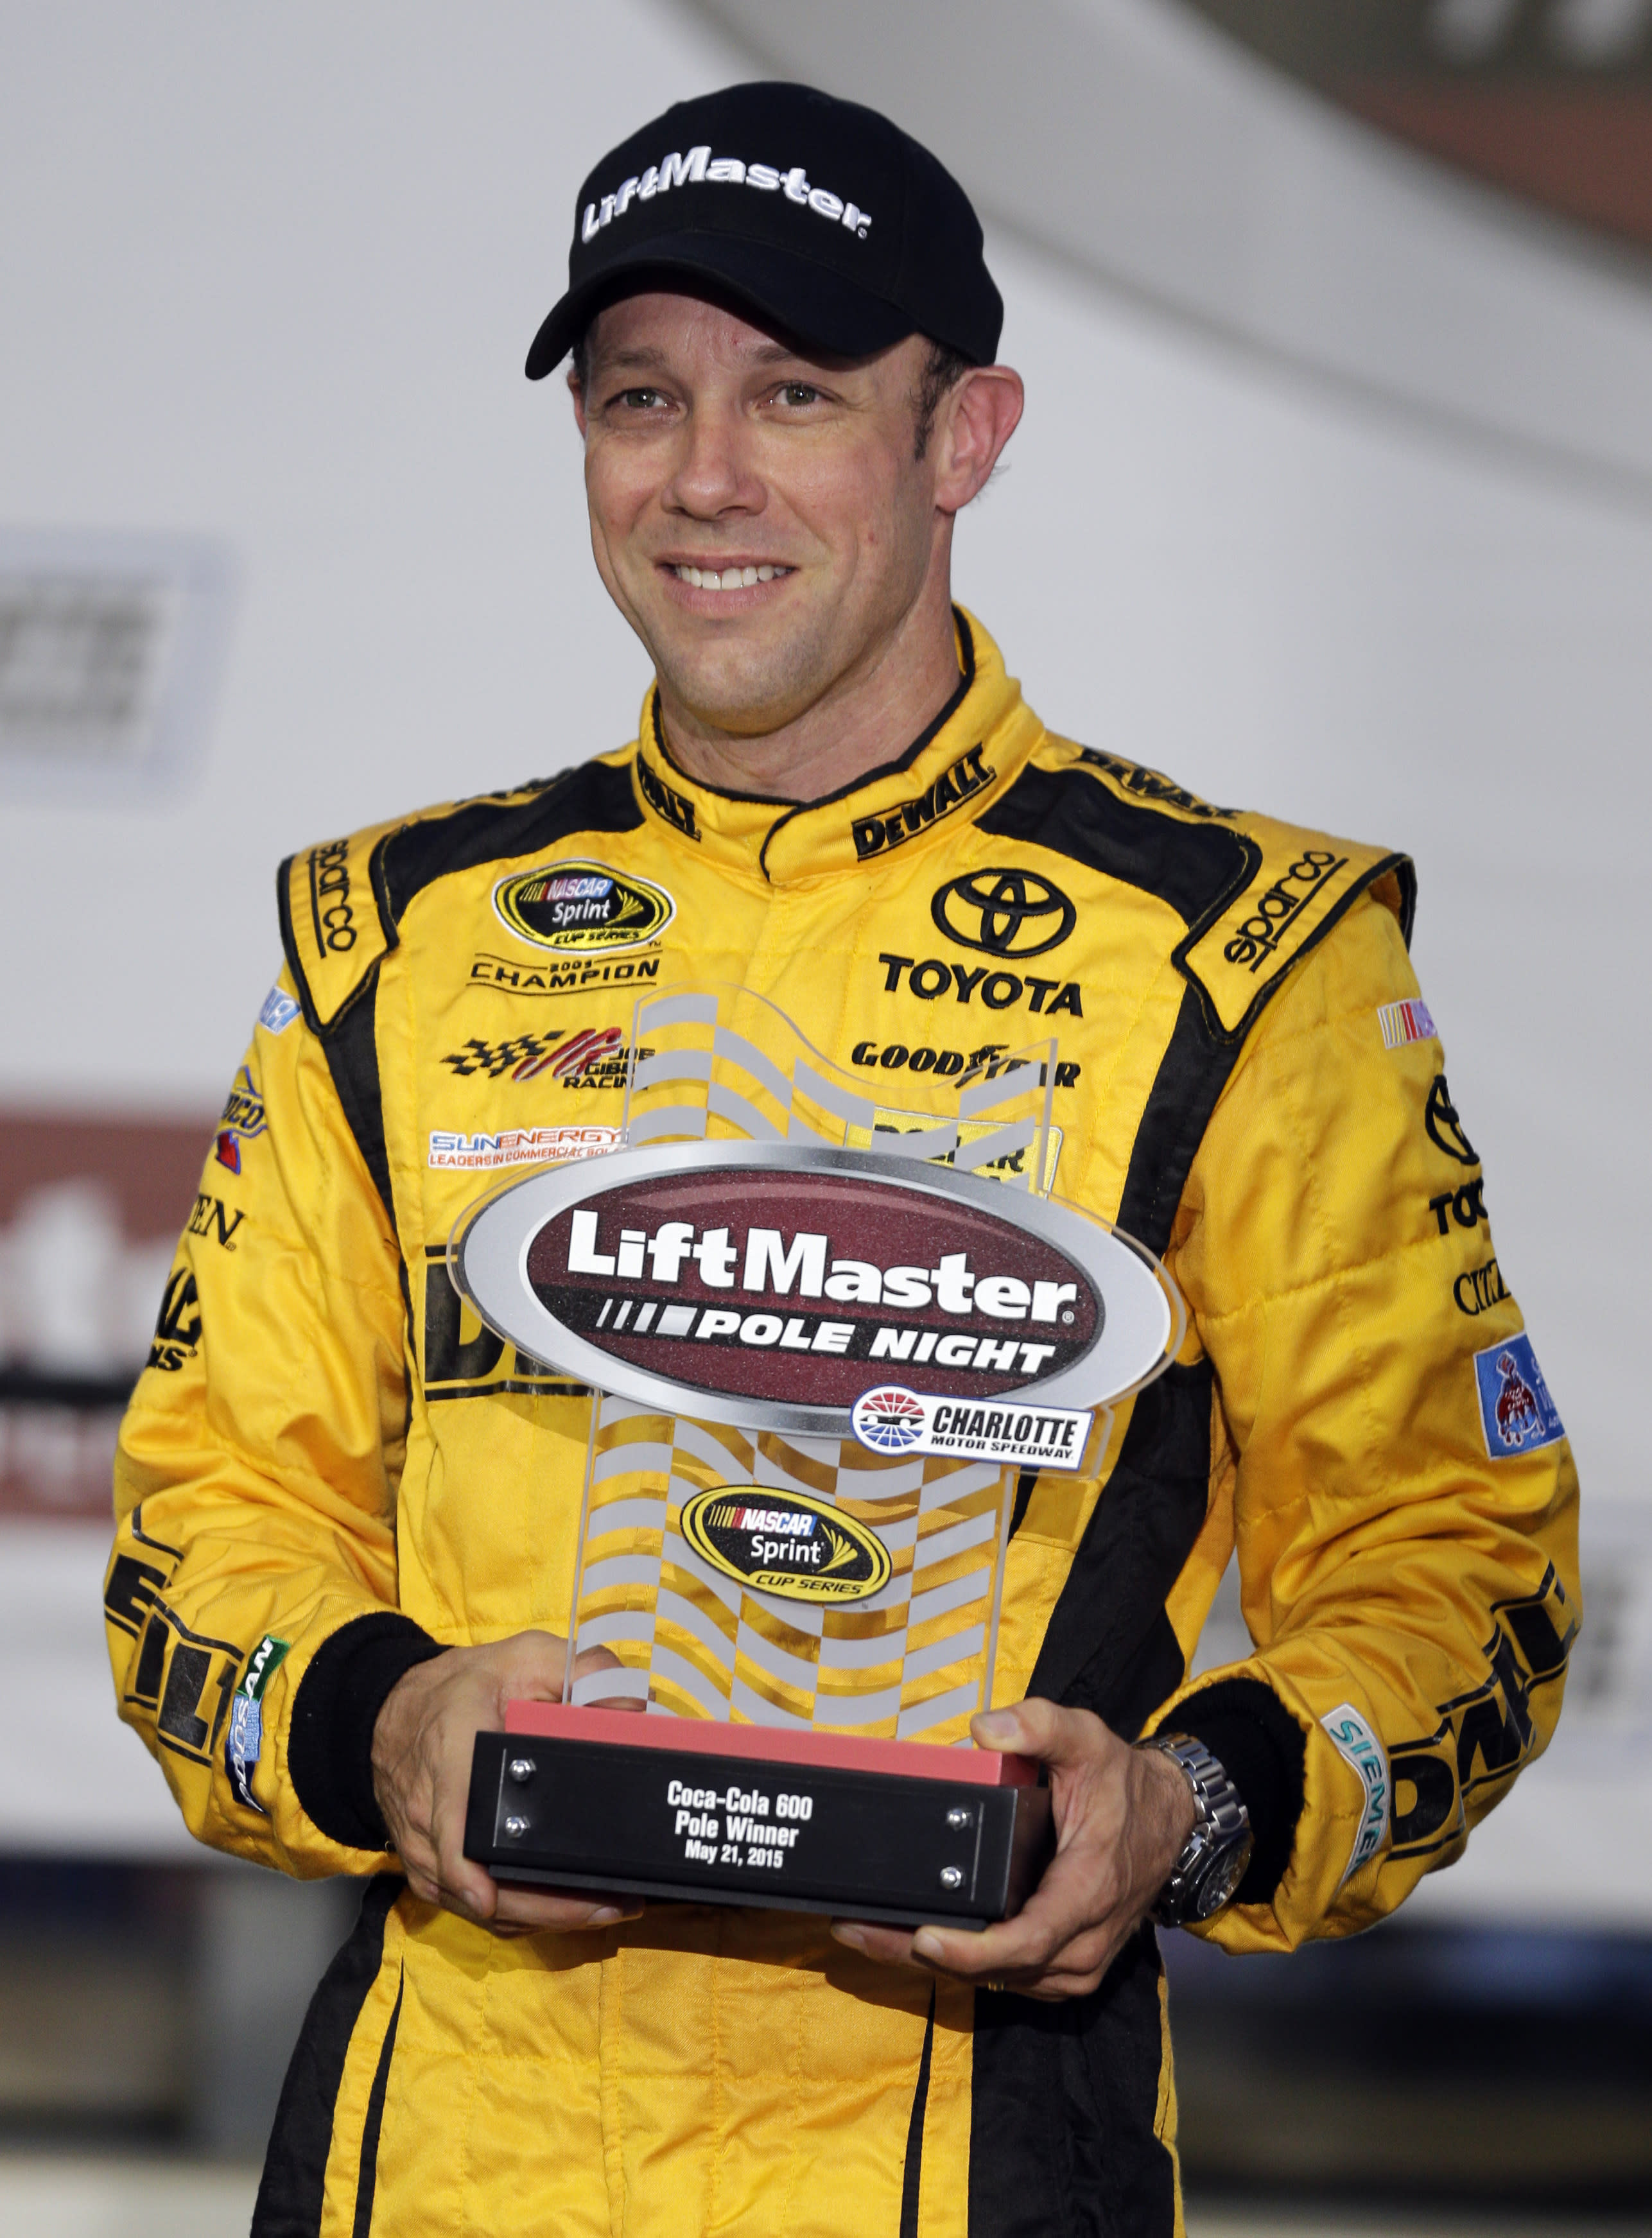 Kenseth wins pole for NASCAR's Coca-Cola 600